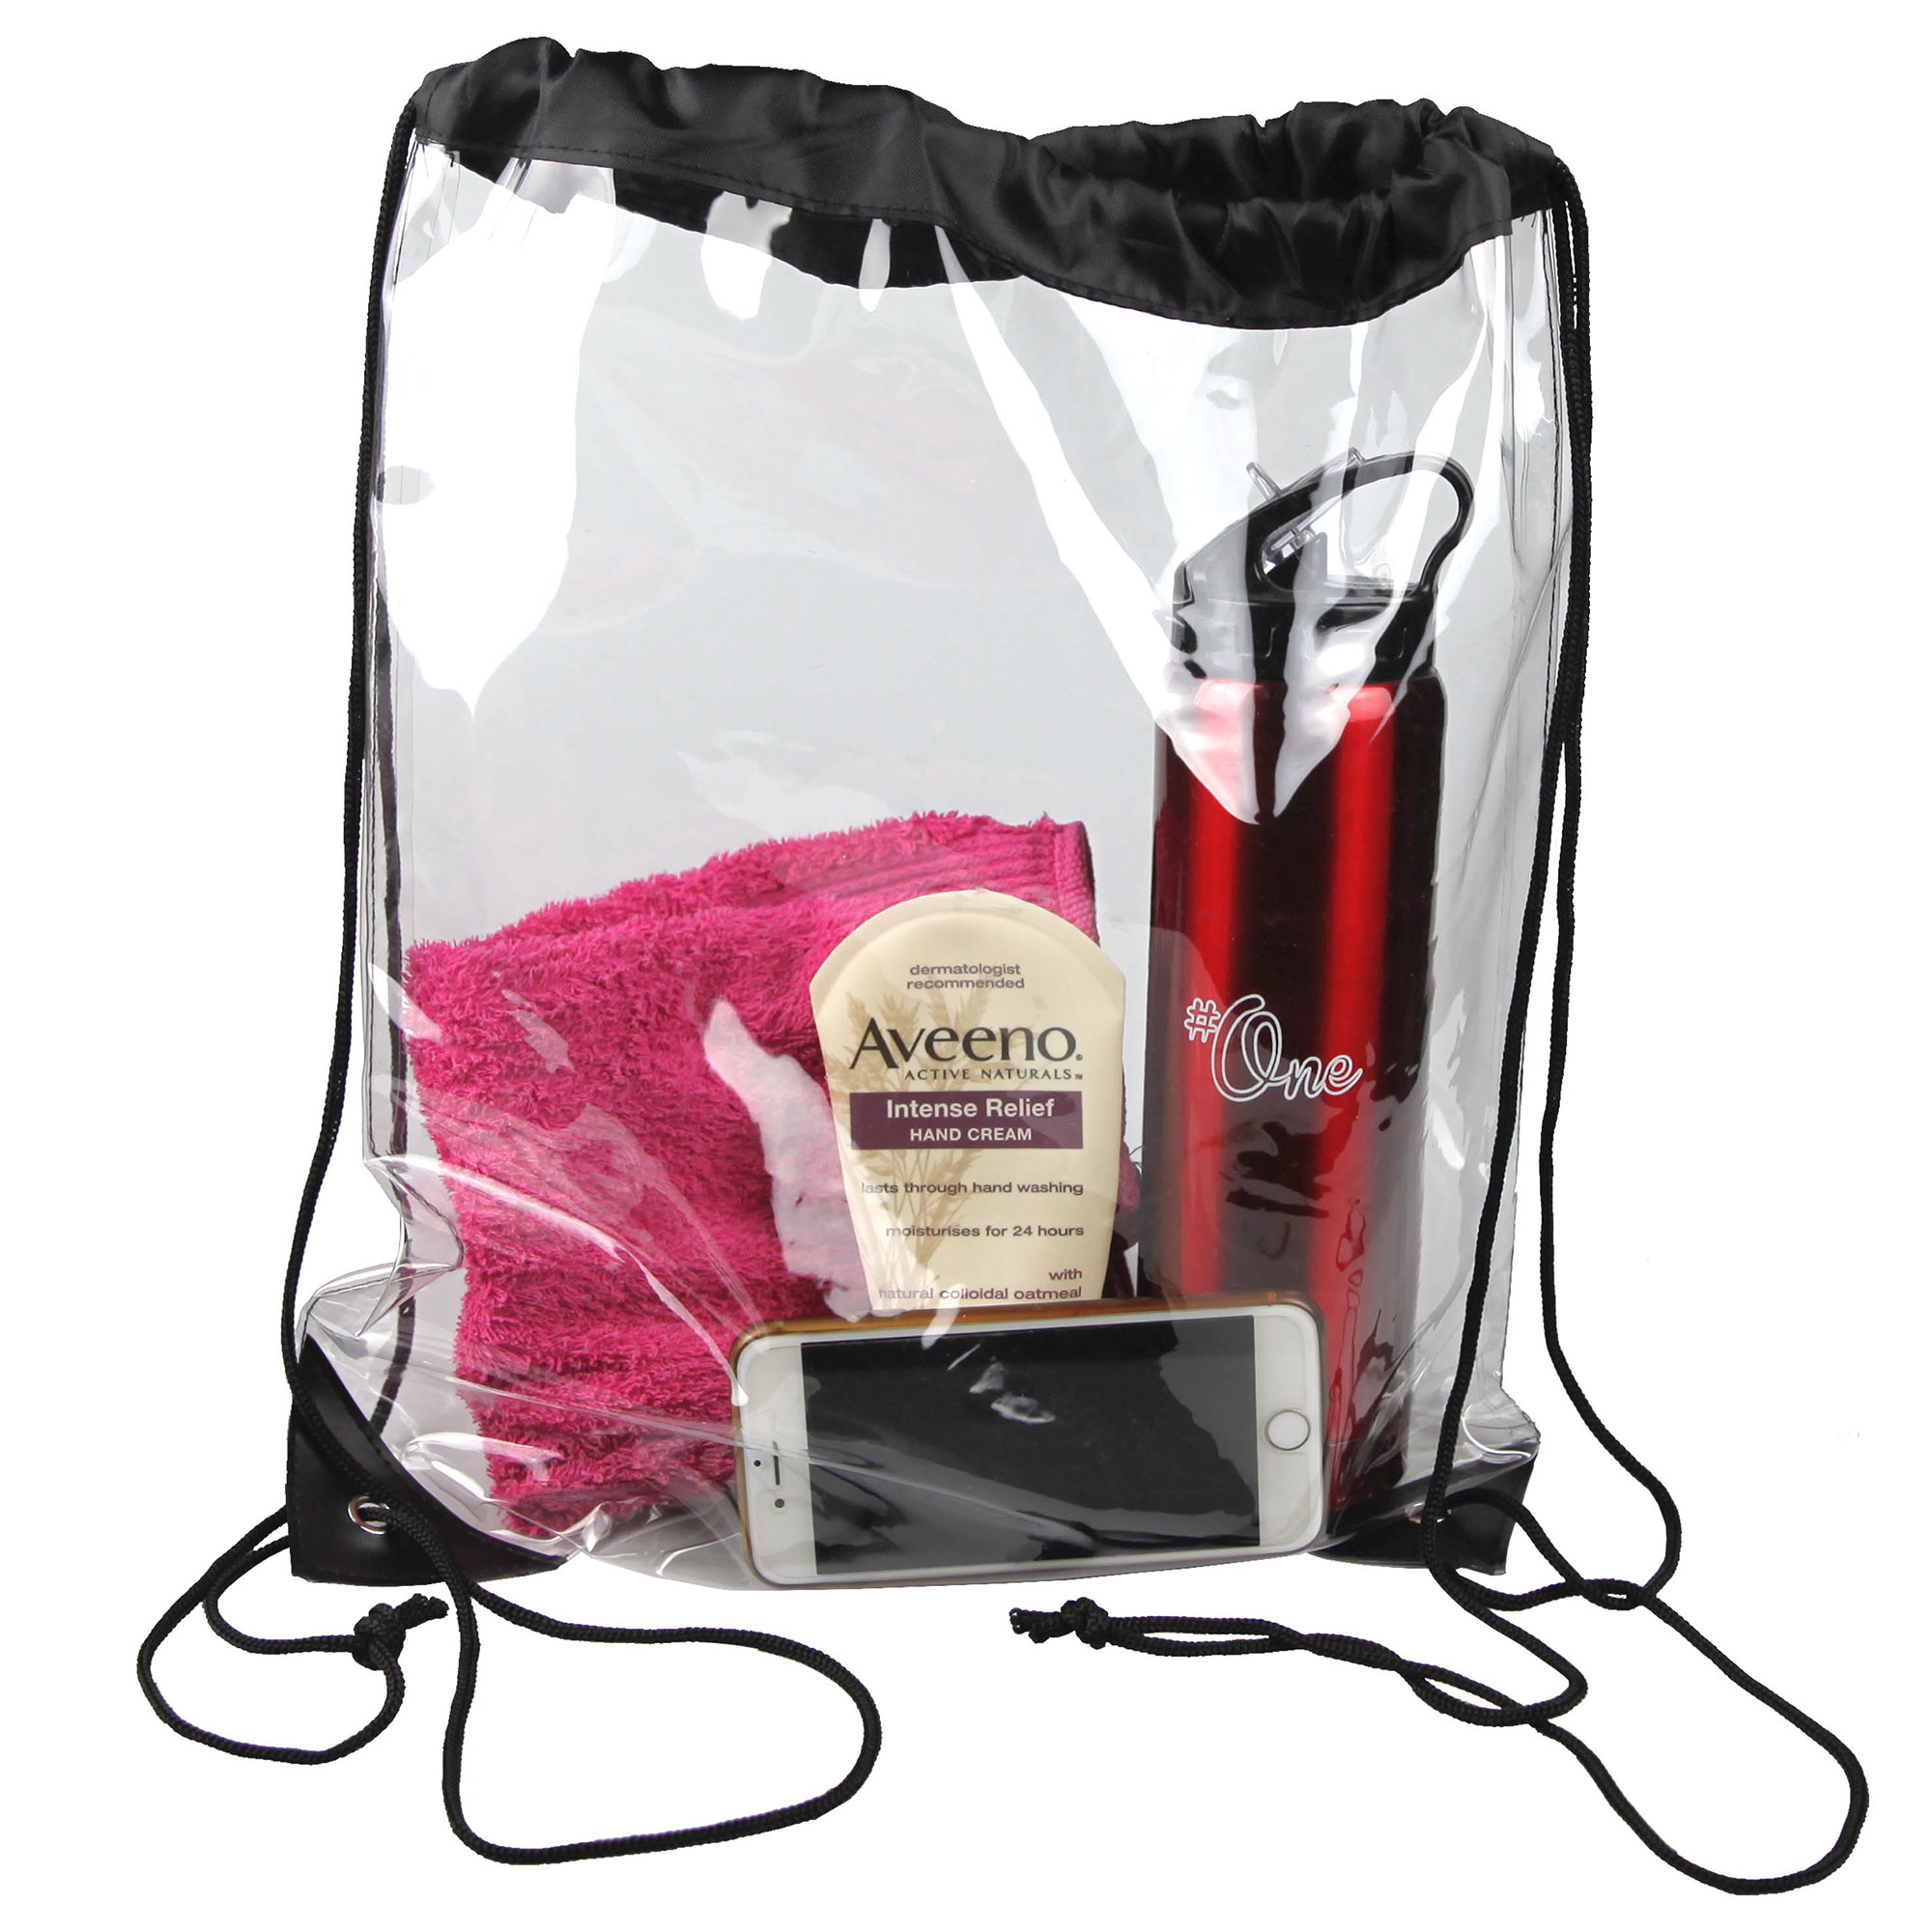 CLEAR BACKPACK - 1 Colour Print, From $2.46